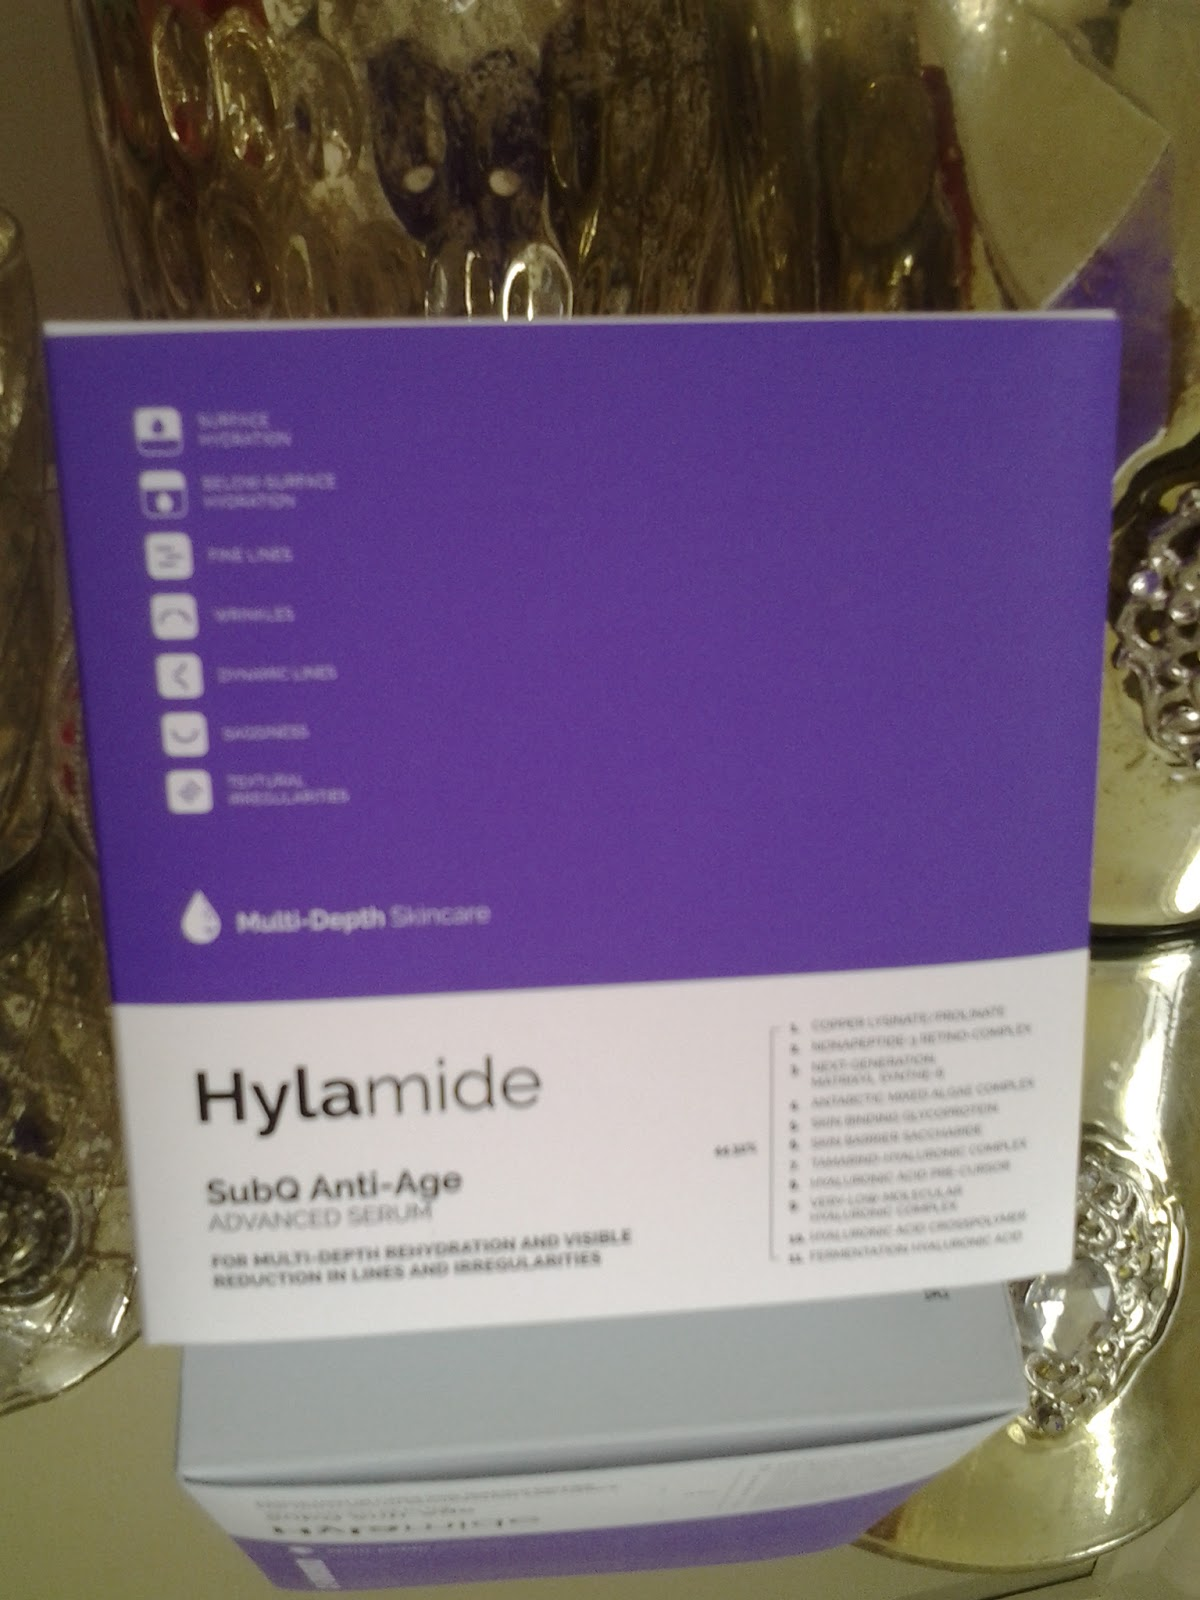 Botox in a bottle with Hylamide Sub Q Anti-age Advanced